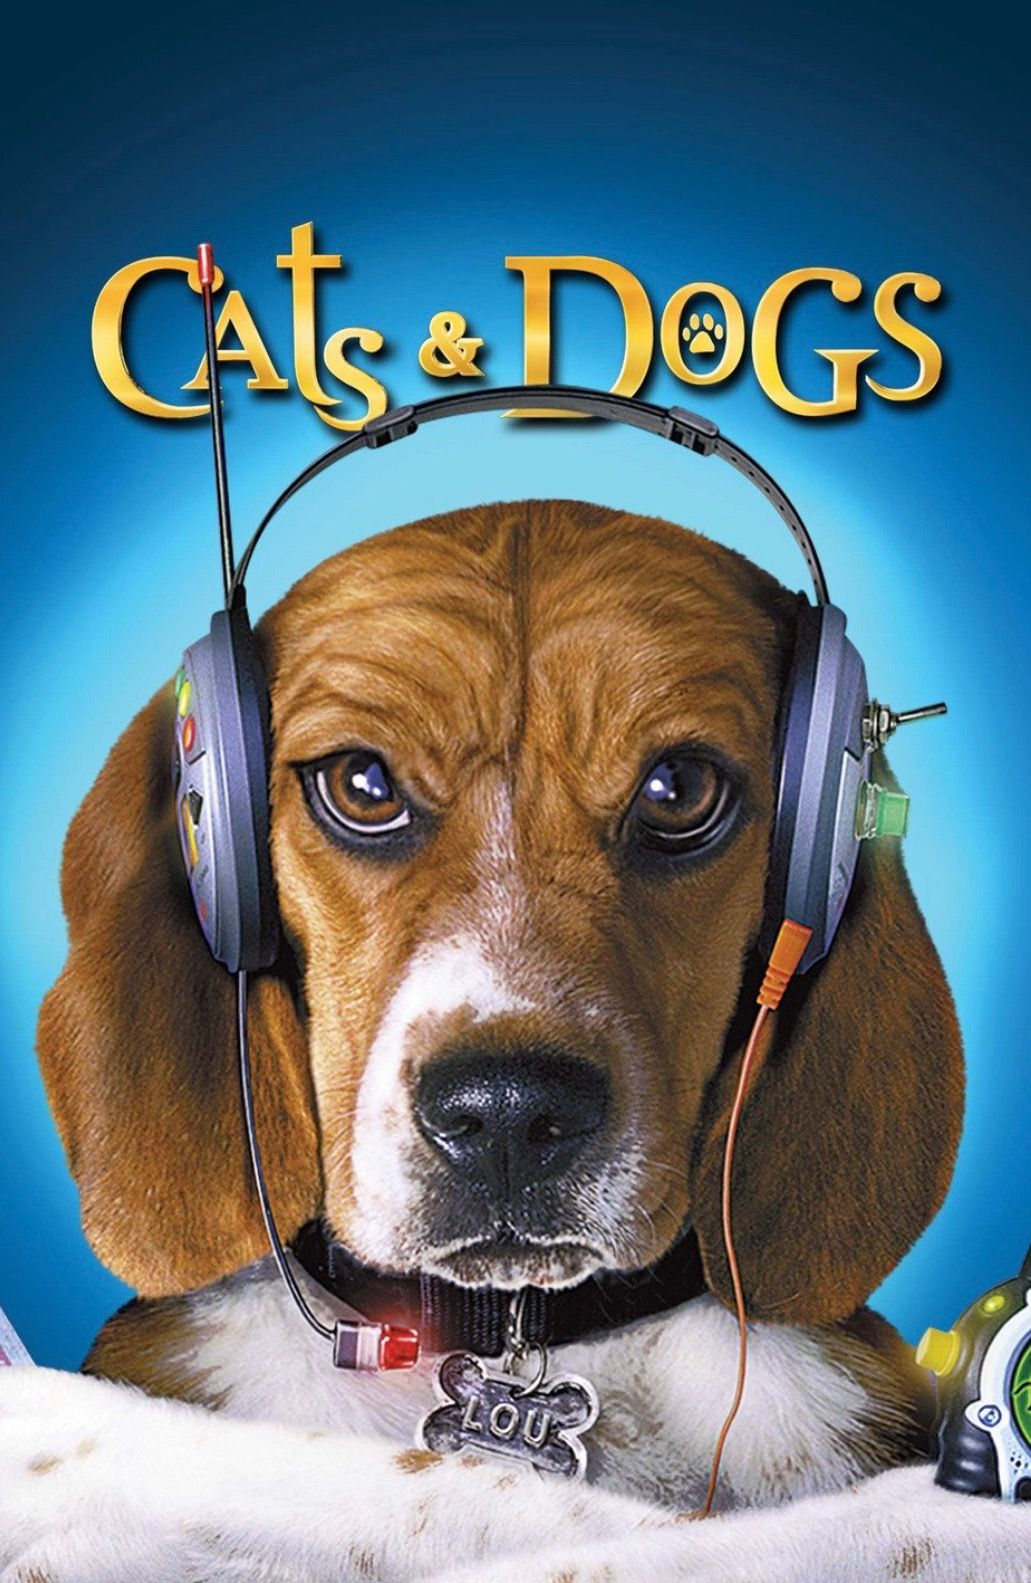 Cats Dogs 2001 Dog Movies Funny Cat Gifts Dog Cat